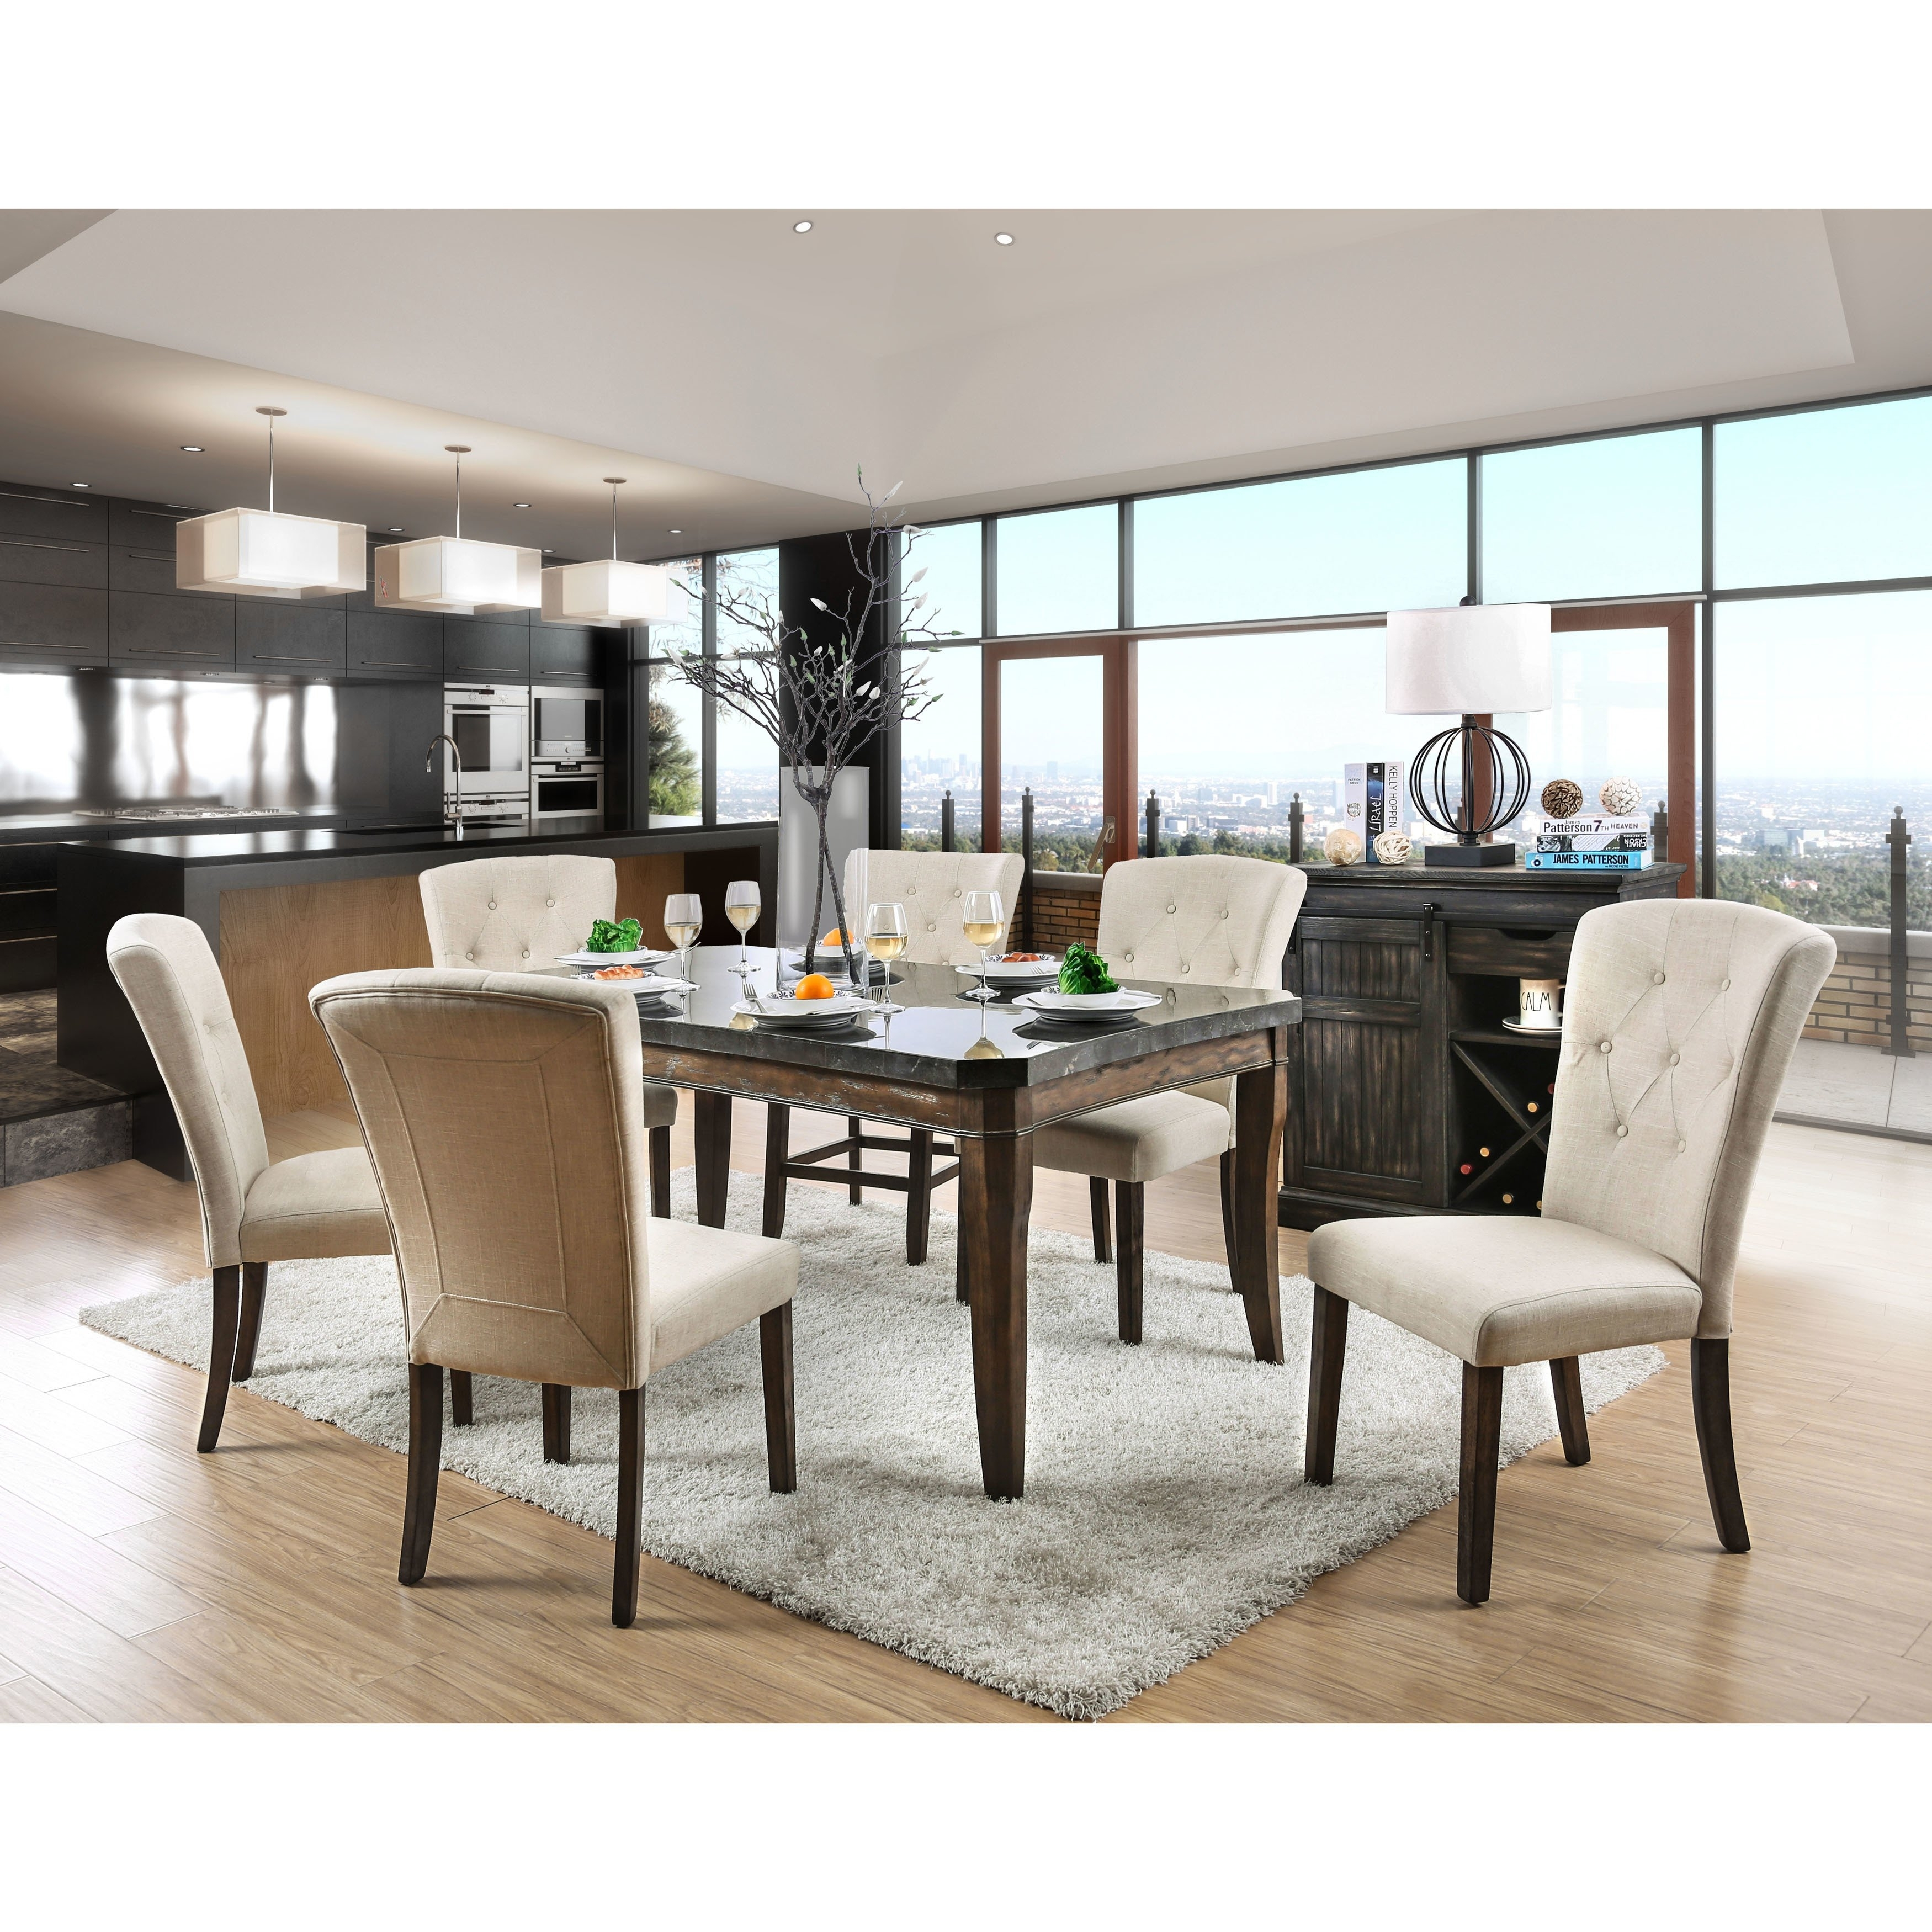 Furniture Of America Dubelle 7 Piece Formal Dining Set: 20 Photos Patterson 6 Piece Dining Sets